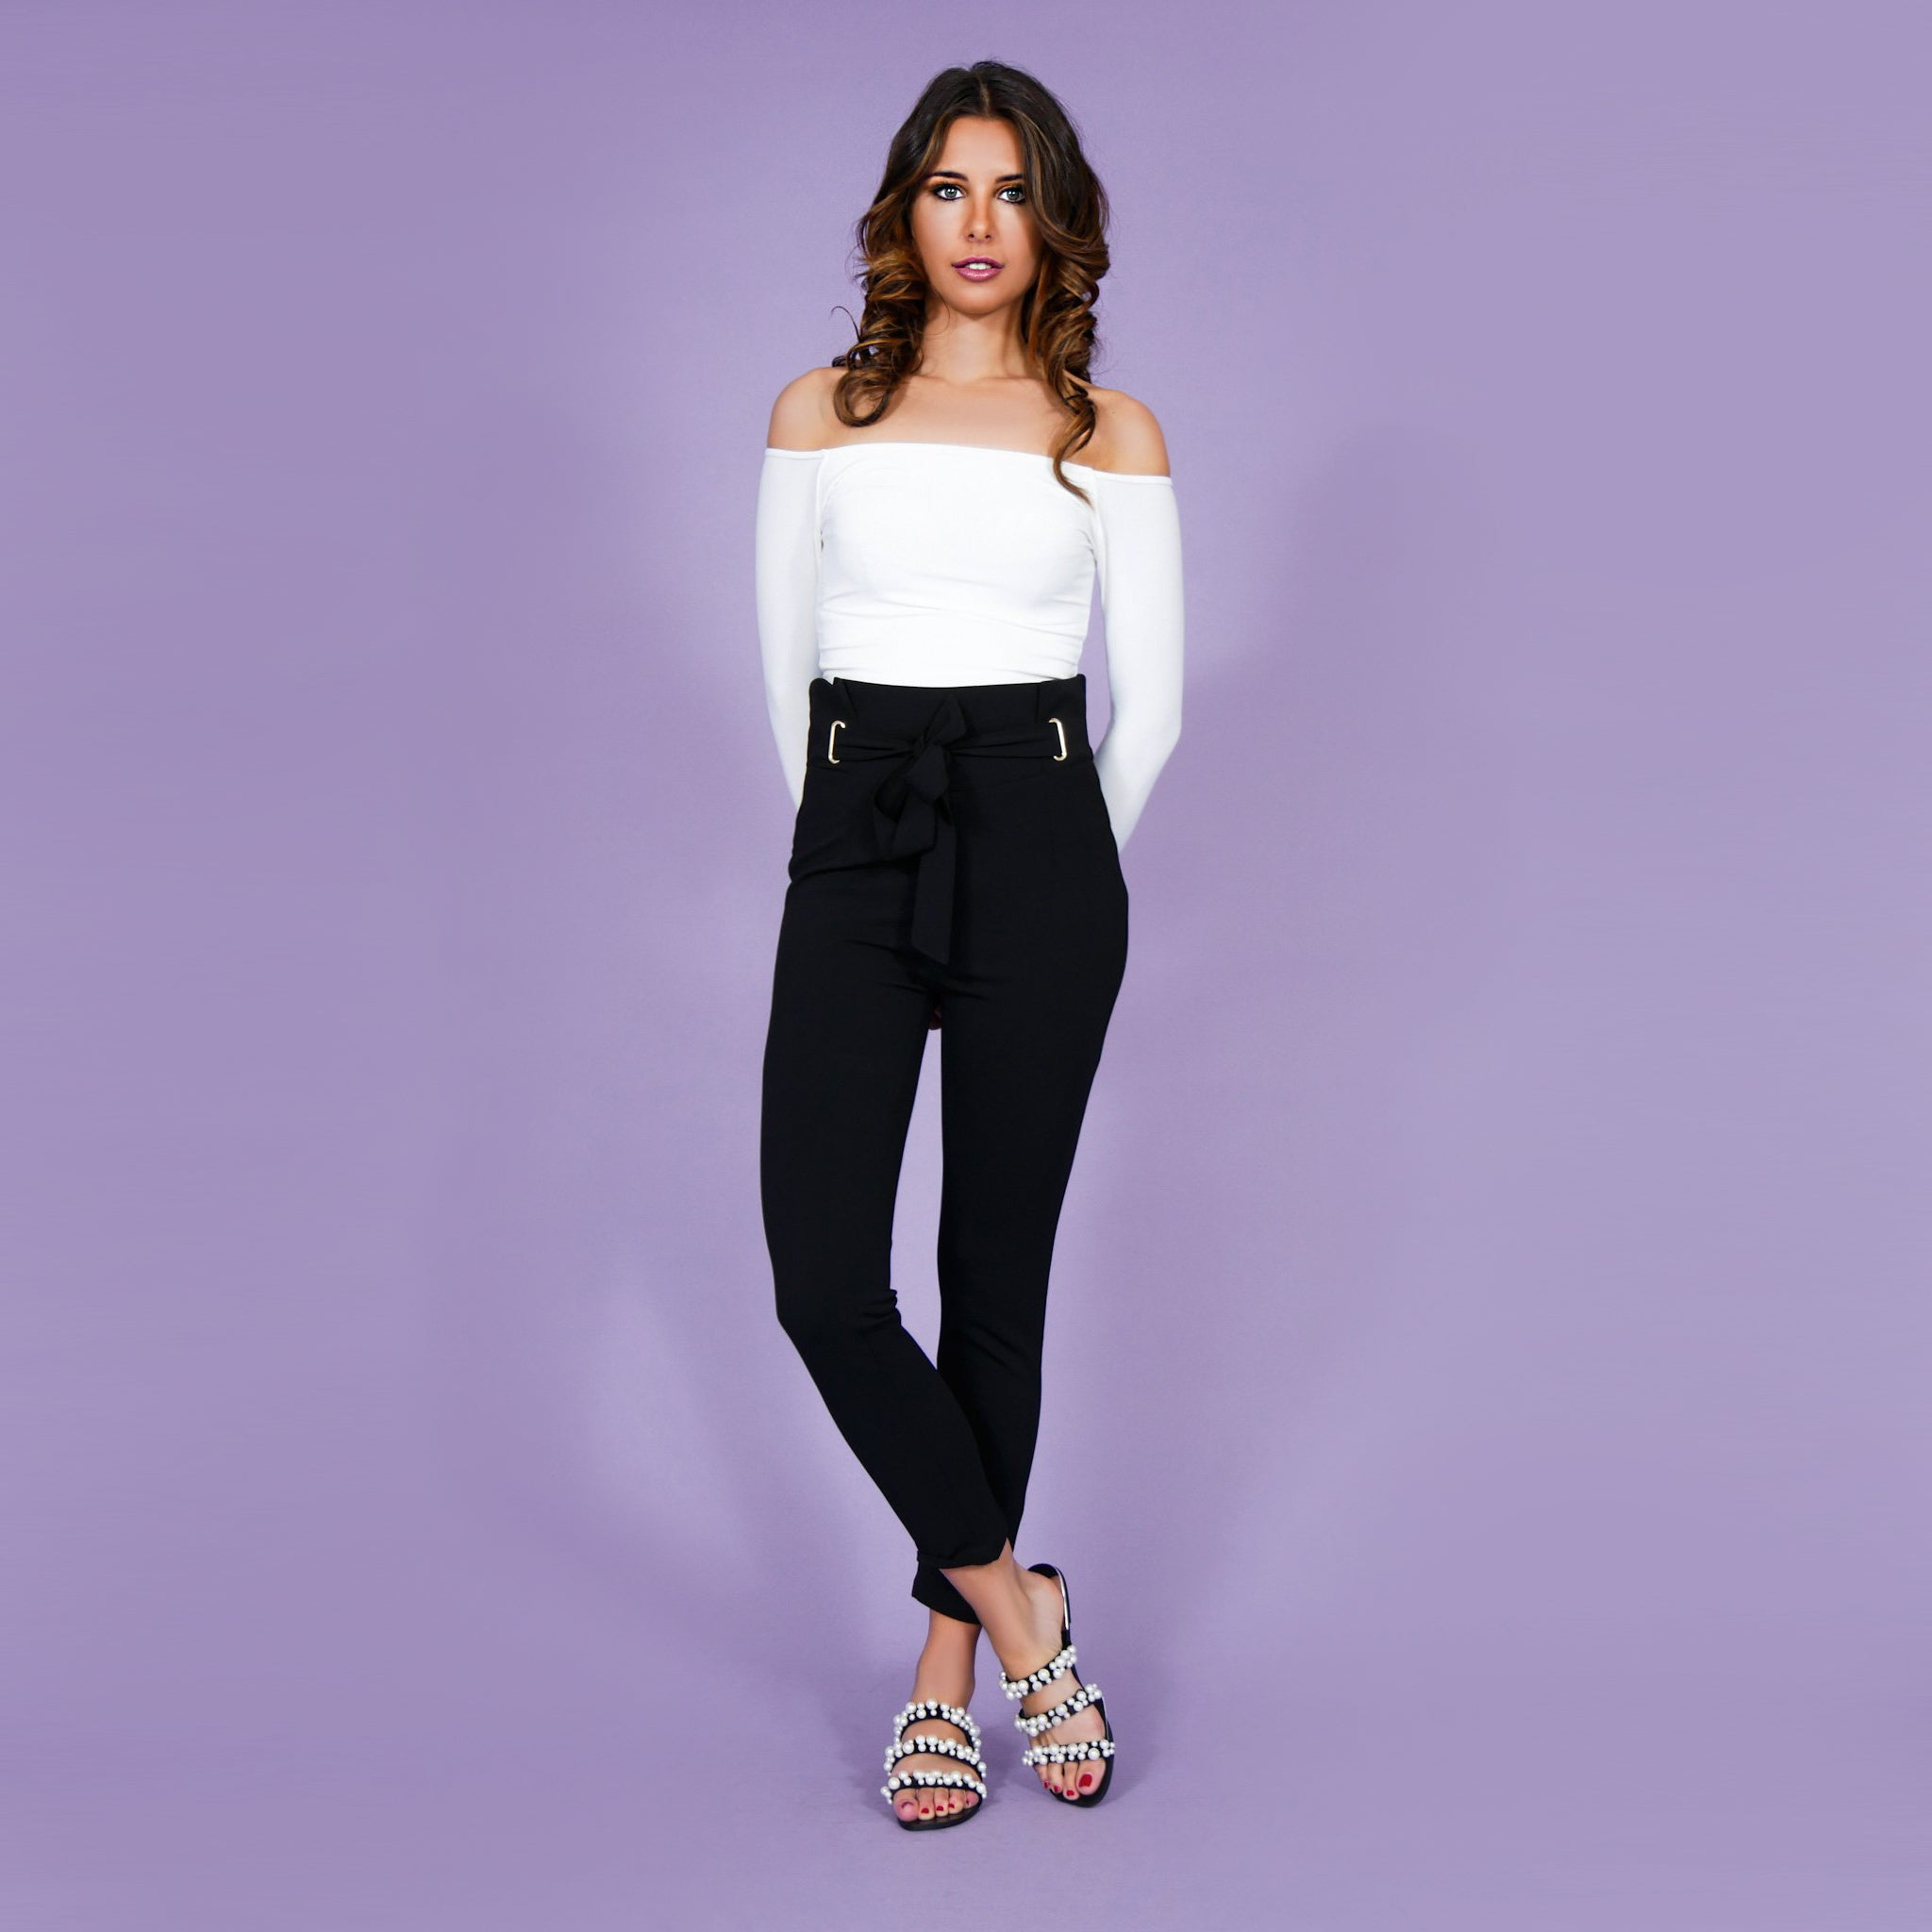 'Sofia' Highwaist Pants Black